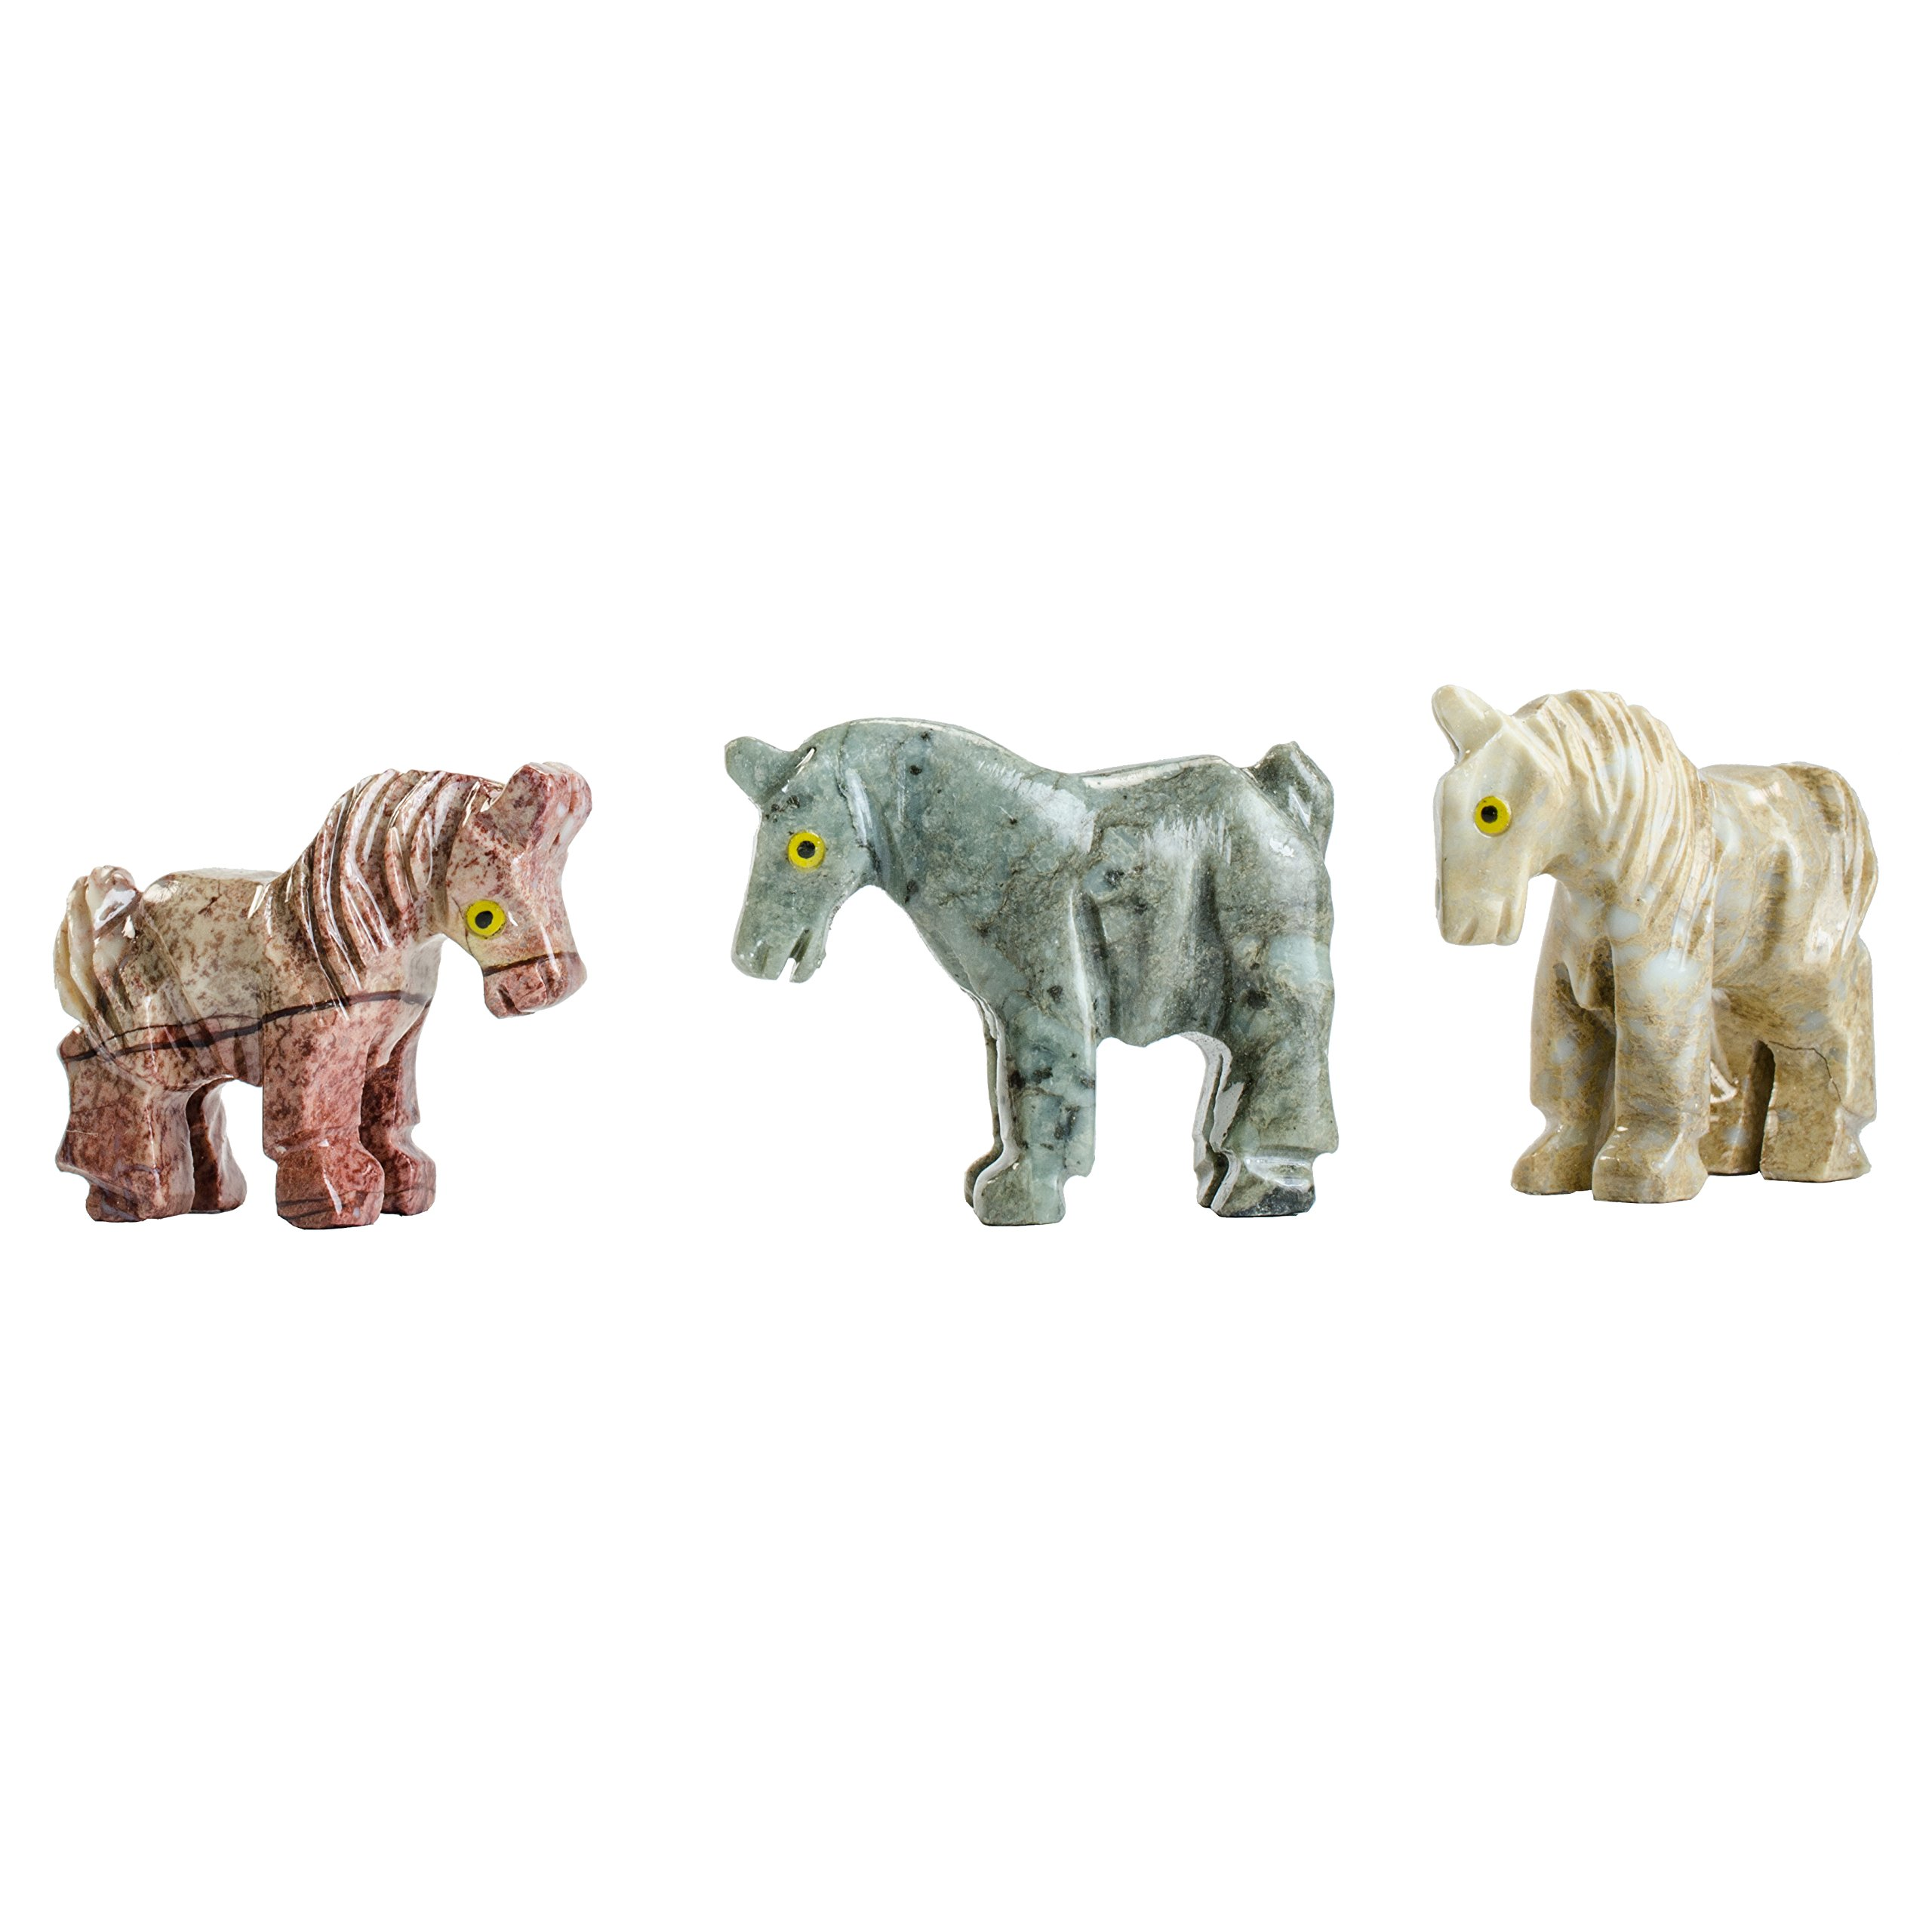 Digging Dolls : 30 pcs Artisan Horse Collectable Animal Figurine - Party Favors, Stocking Stuffers, Gifts, Collecting and More!